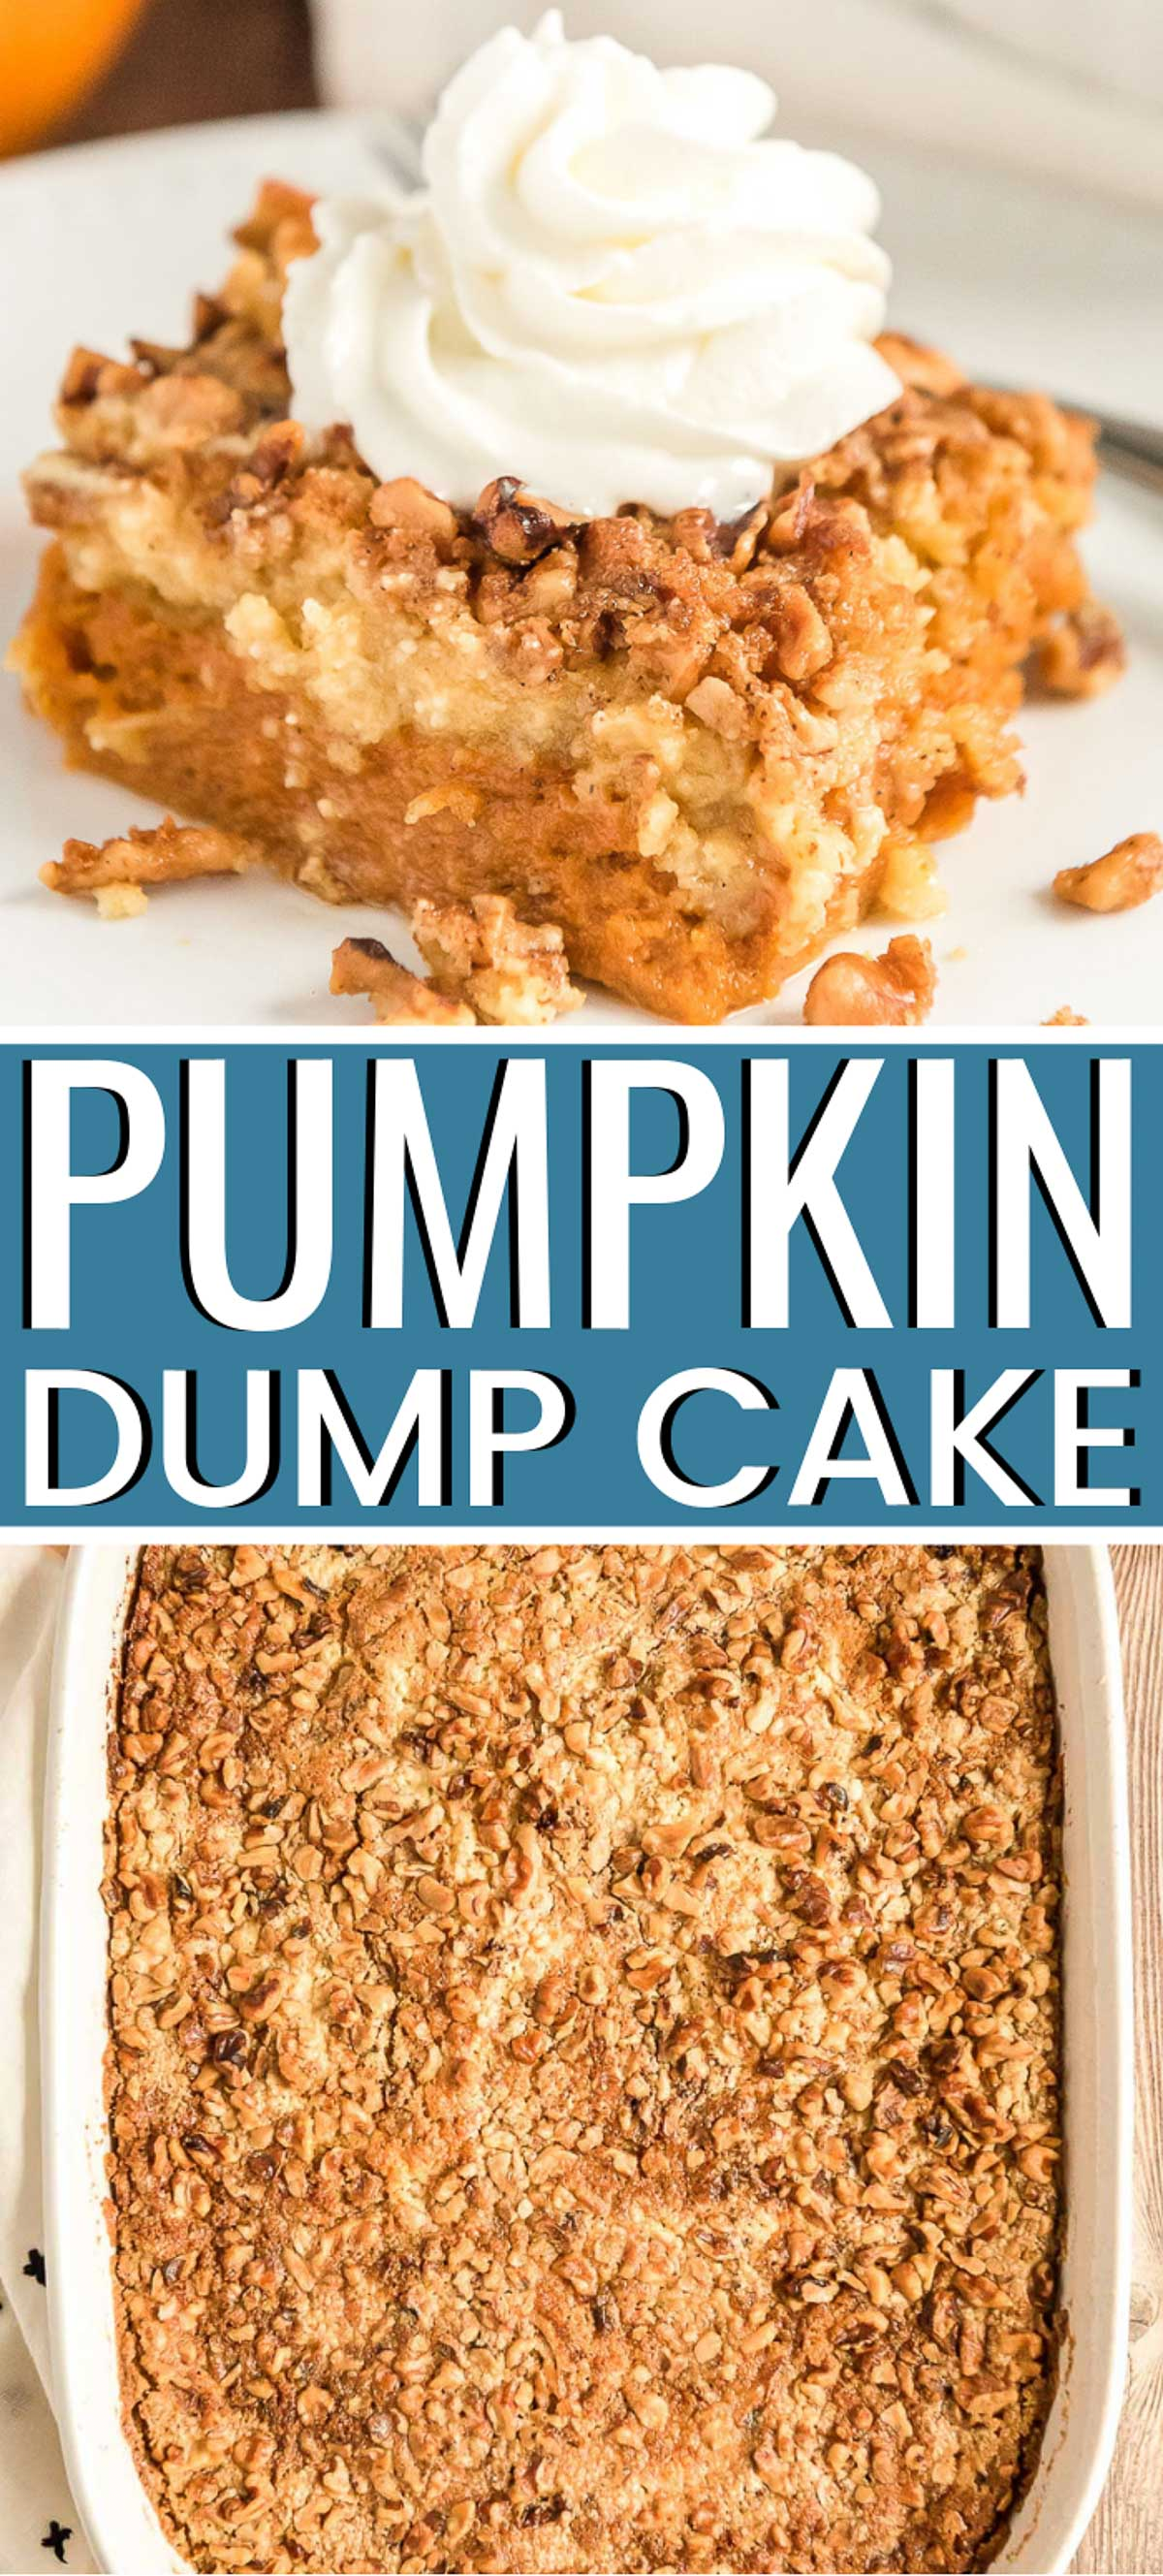 Pumpkin Dump Cake is the perfect fall dessert alternative to pumpkin pie! With a dense pumpkin base and a cake topping both loaded with Pumpkin Pie Spice and chopped nuts, this dessert's amazing layers will impress the whole family! via @sugarandsoulco